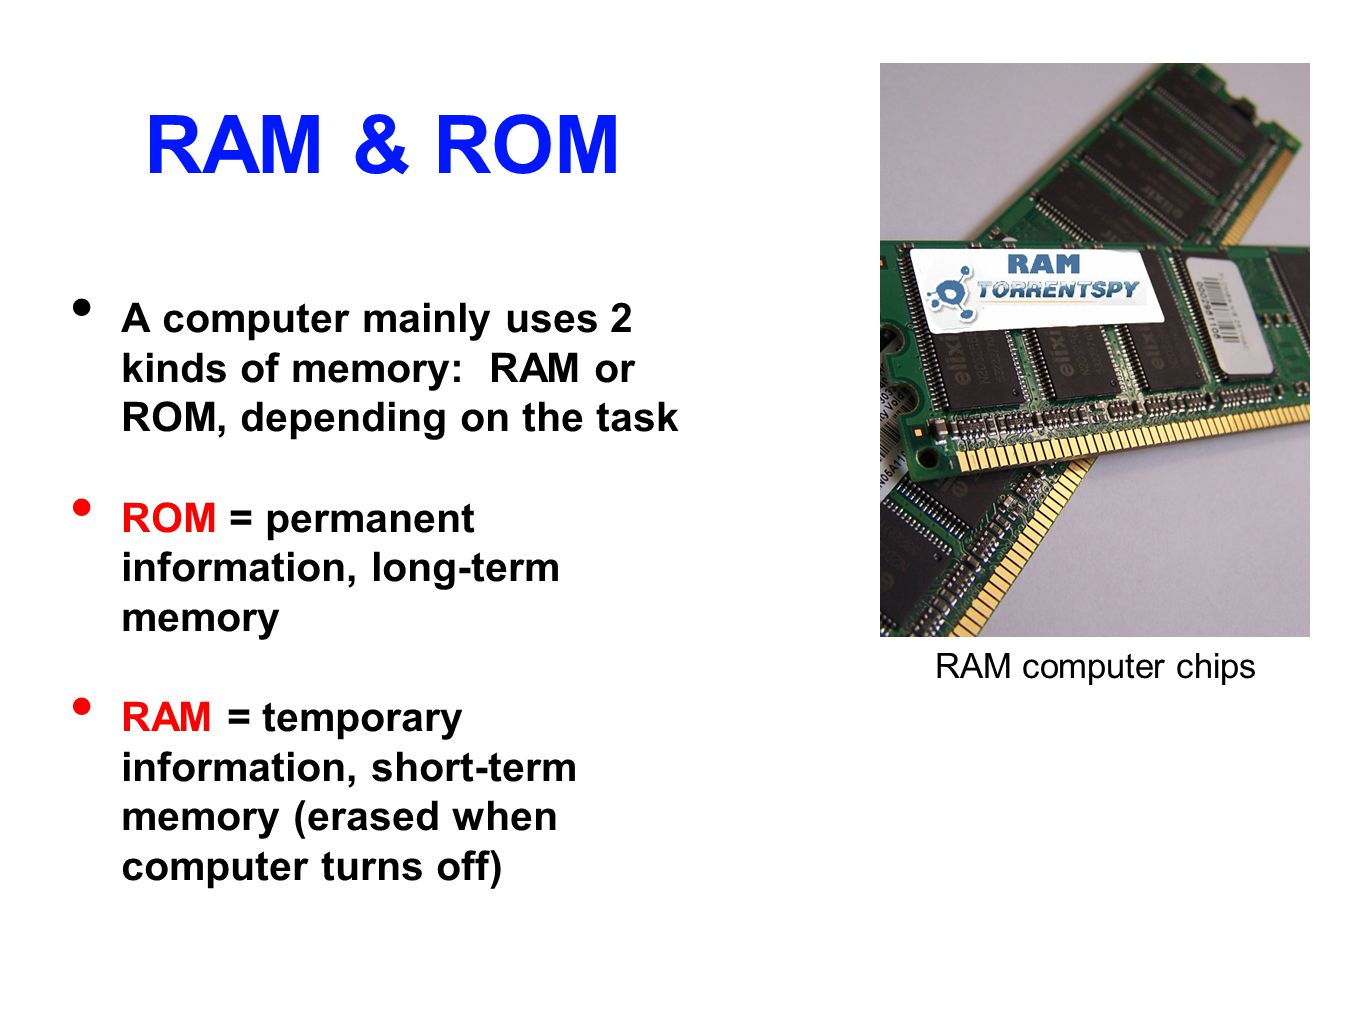 RAM & ROM A computer mainly uses 2 kinds of memory: RAM or ROM, depending on the task. ROM = permanent information, long-term memory.